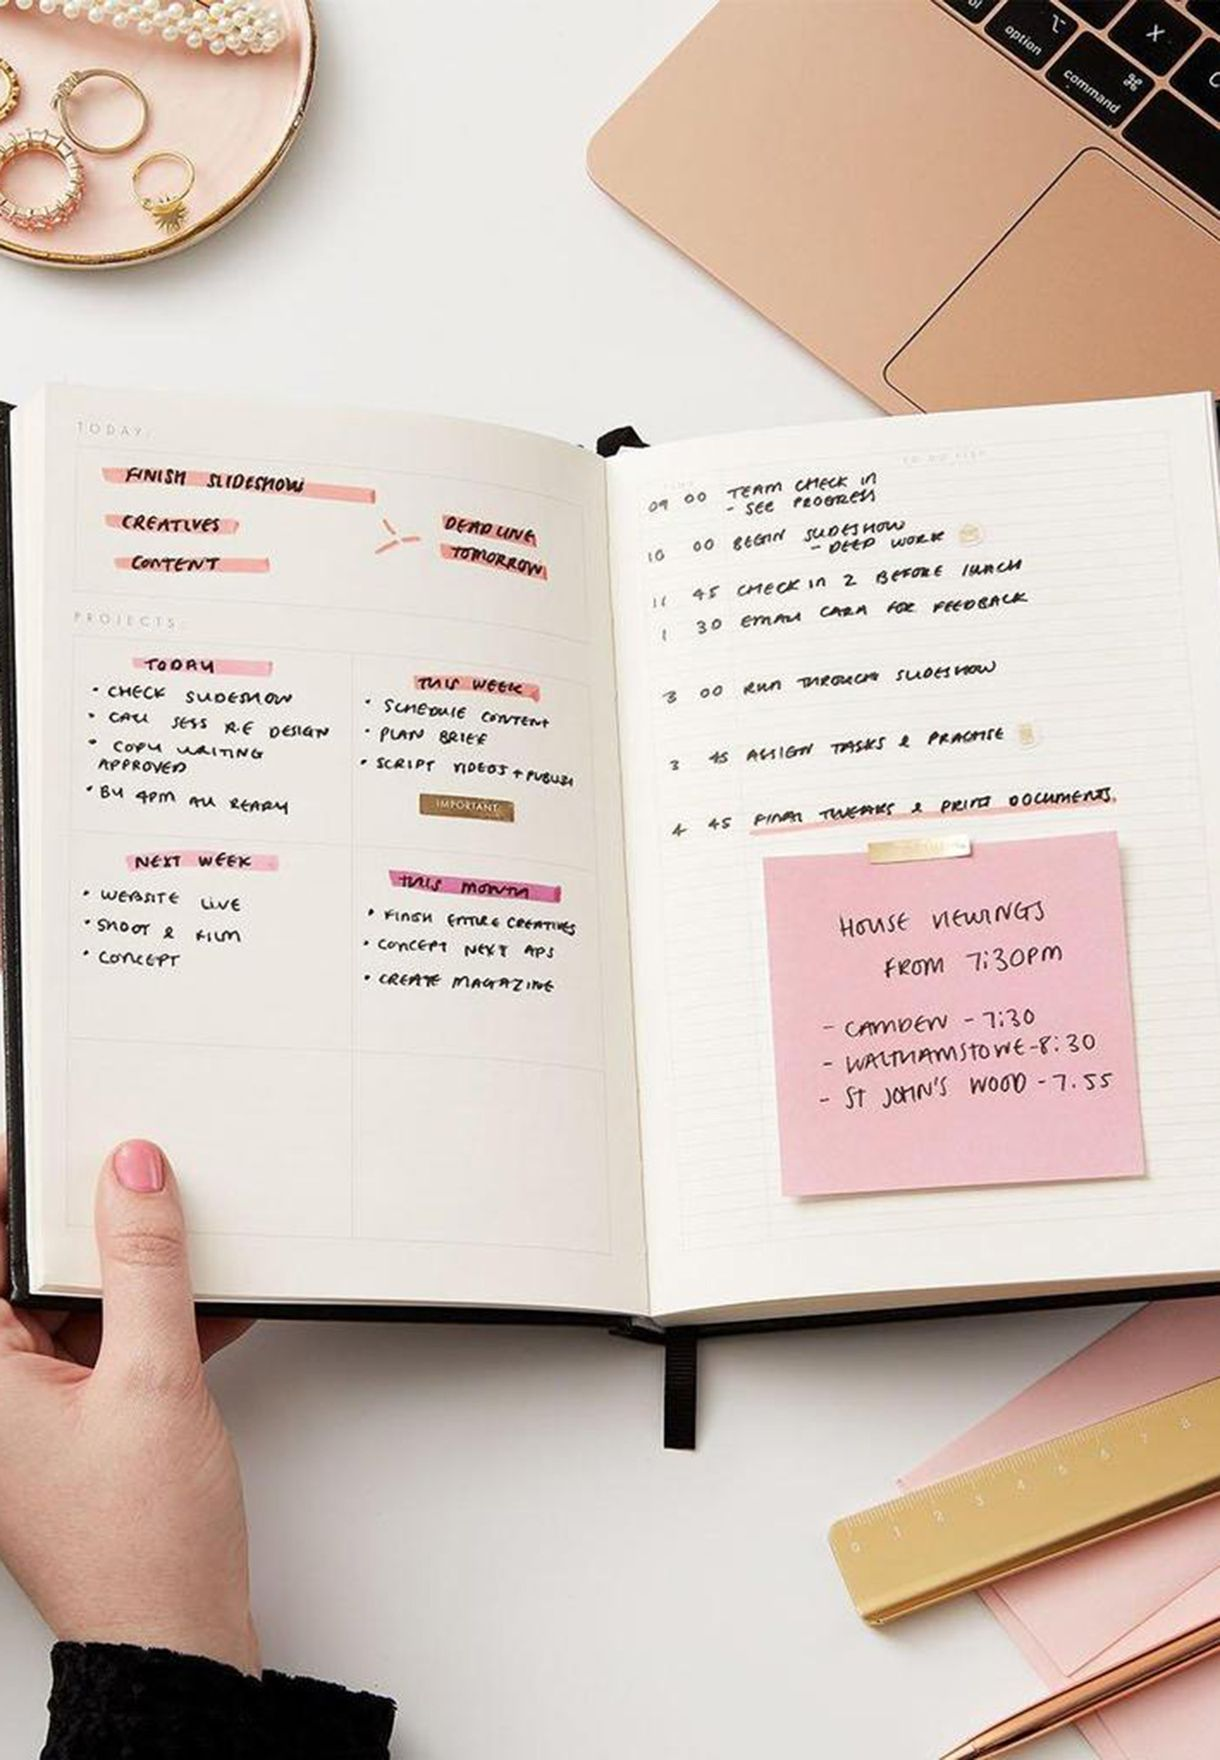 The Project Notebook